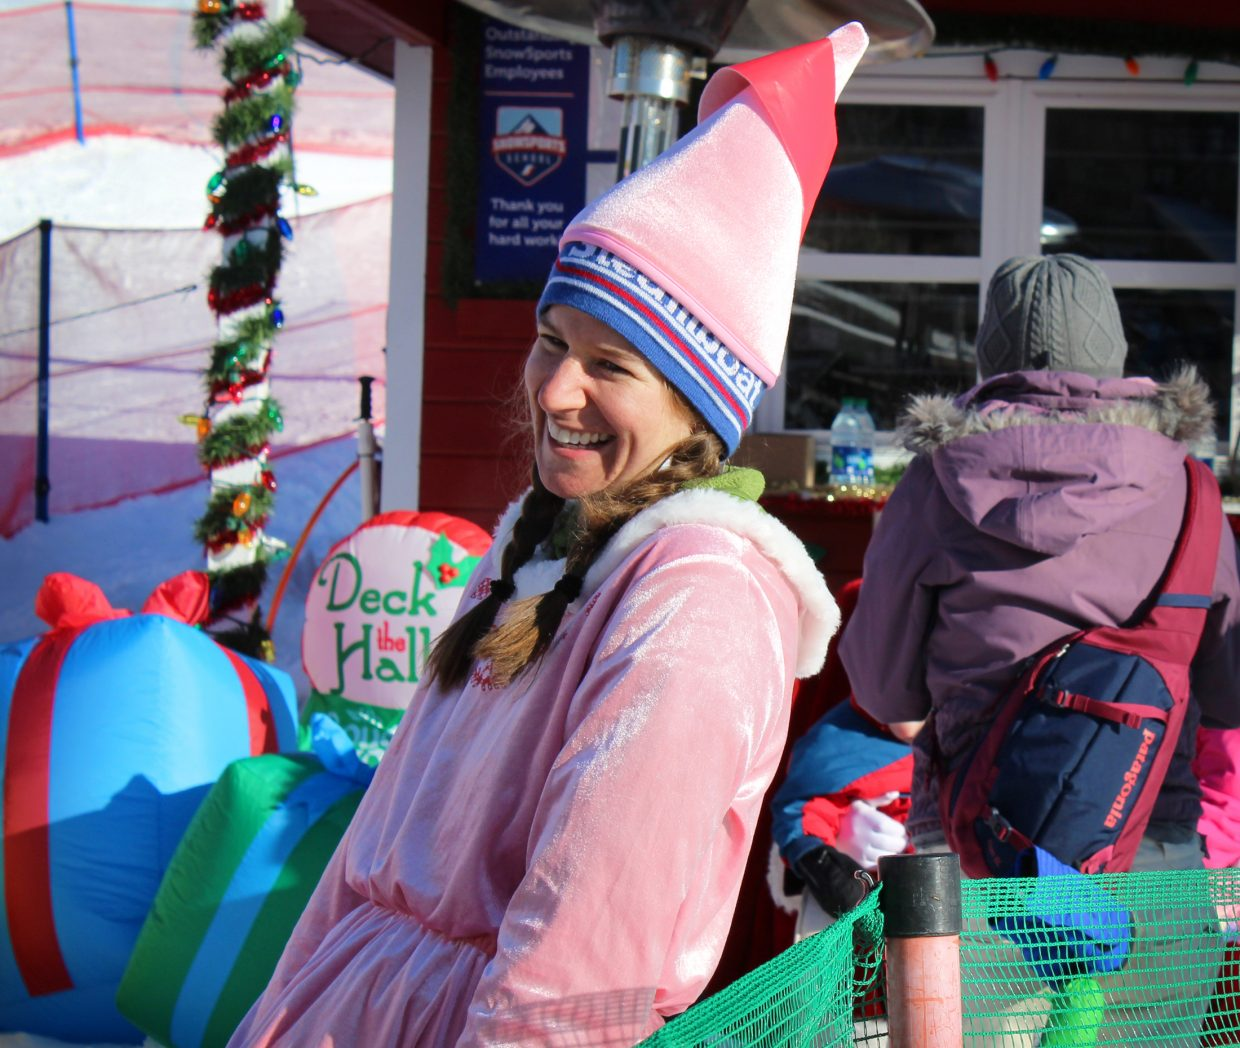 One of Santa's elves laughs while speaking with children patiently awaiting their chance to meet Santa Claus at the Holiday Festival at Steamboat Resort.